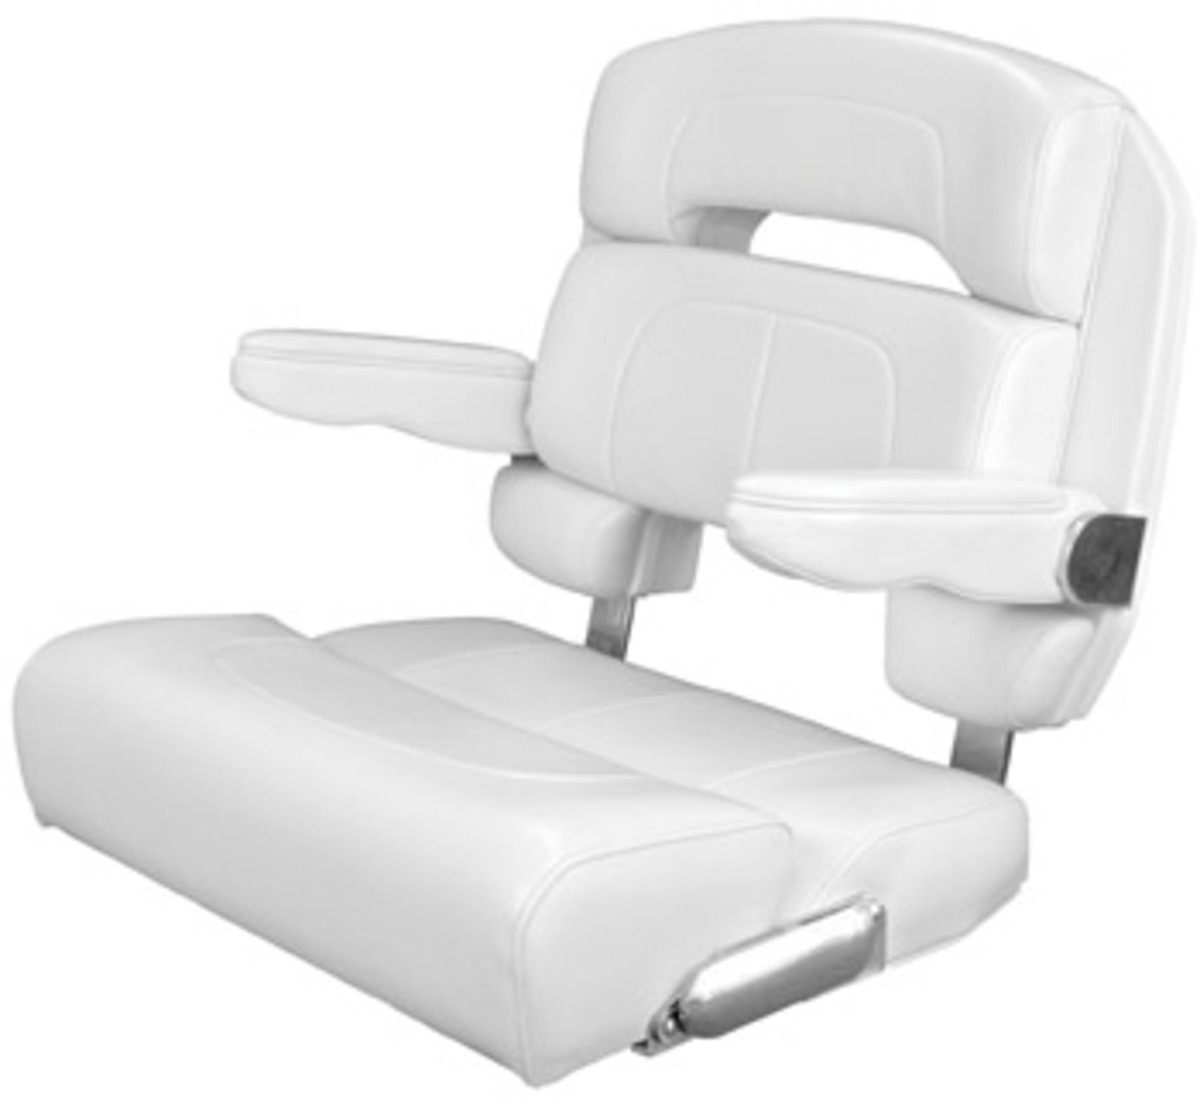 Helm Chairs Taco Helm Chairs Soundings Online